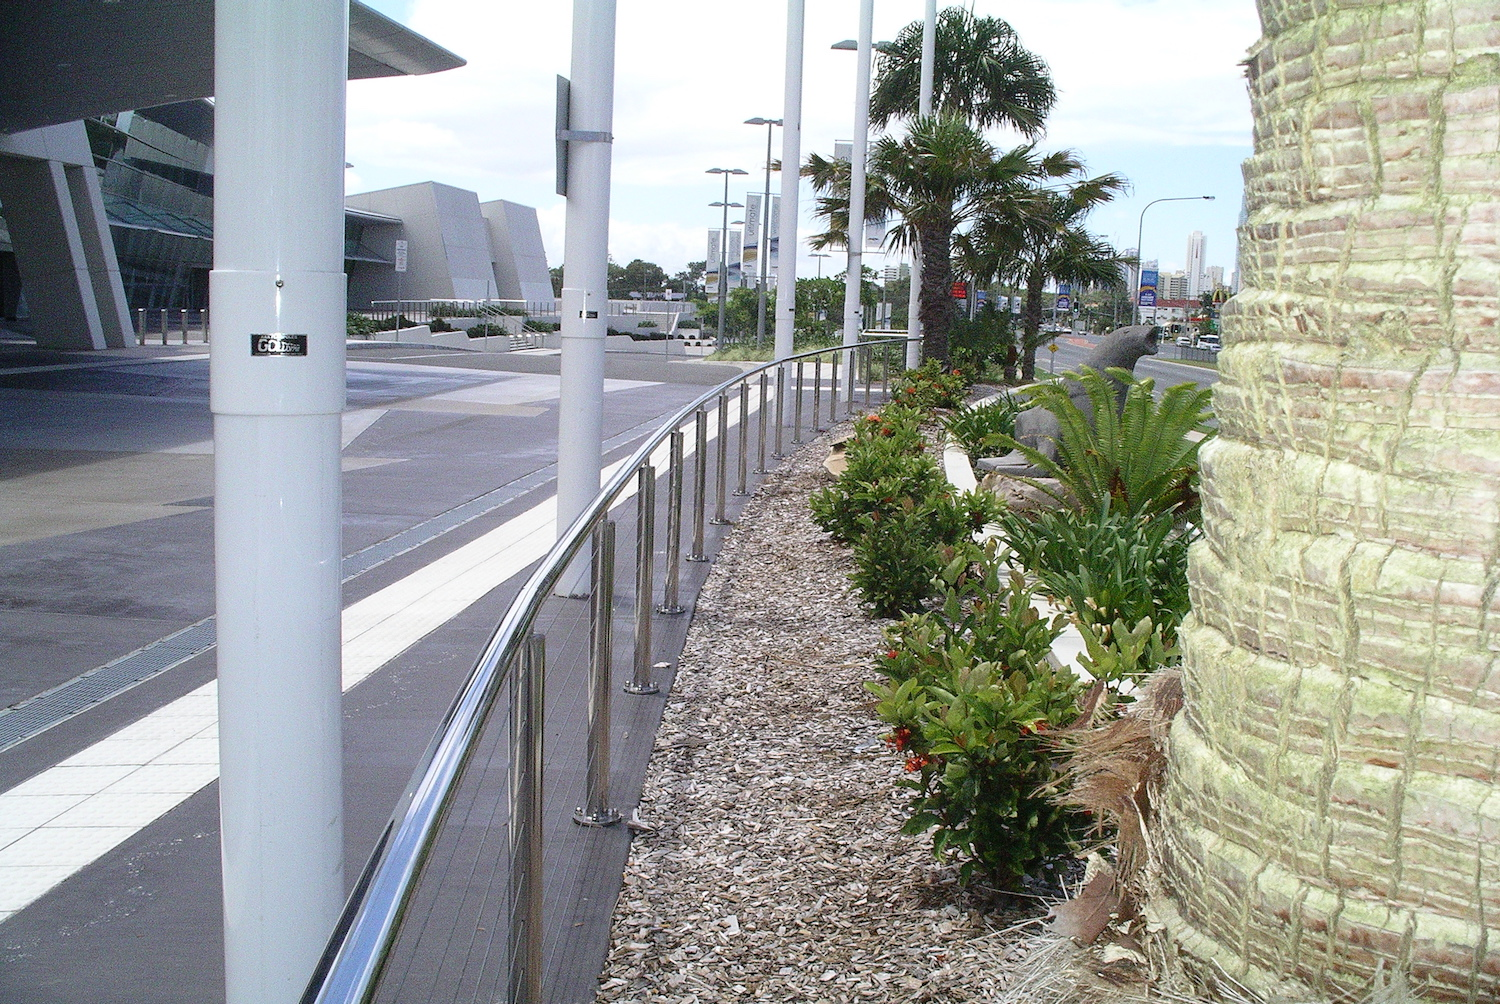 Gold Coast Convention and Exhibition Centrebalustrading 00046